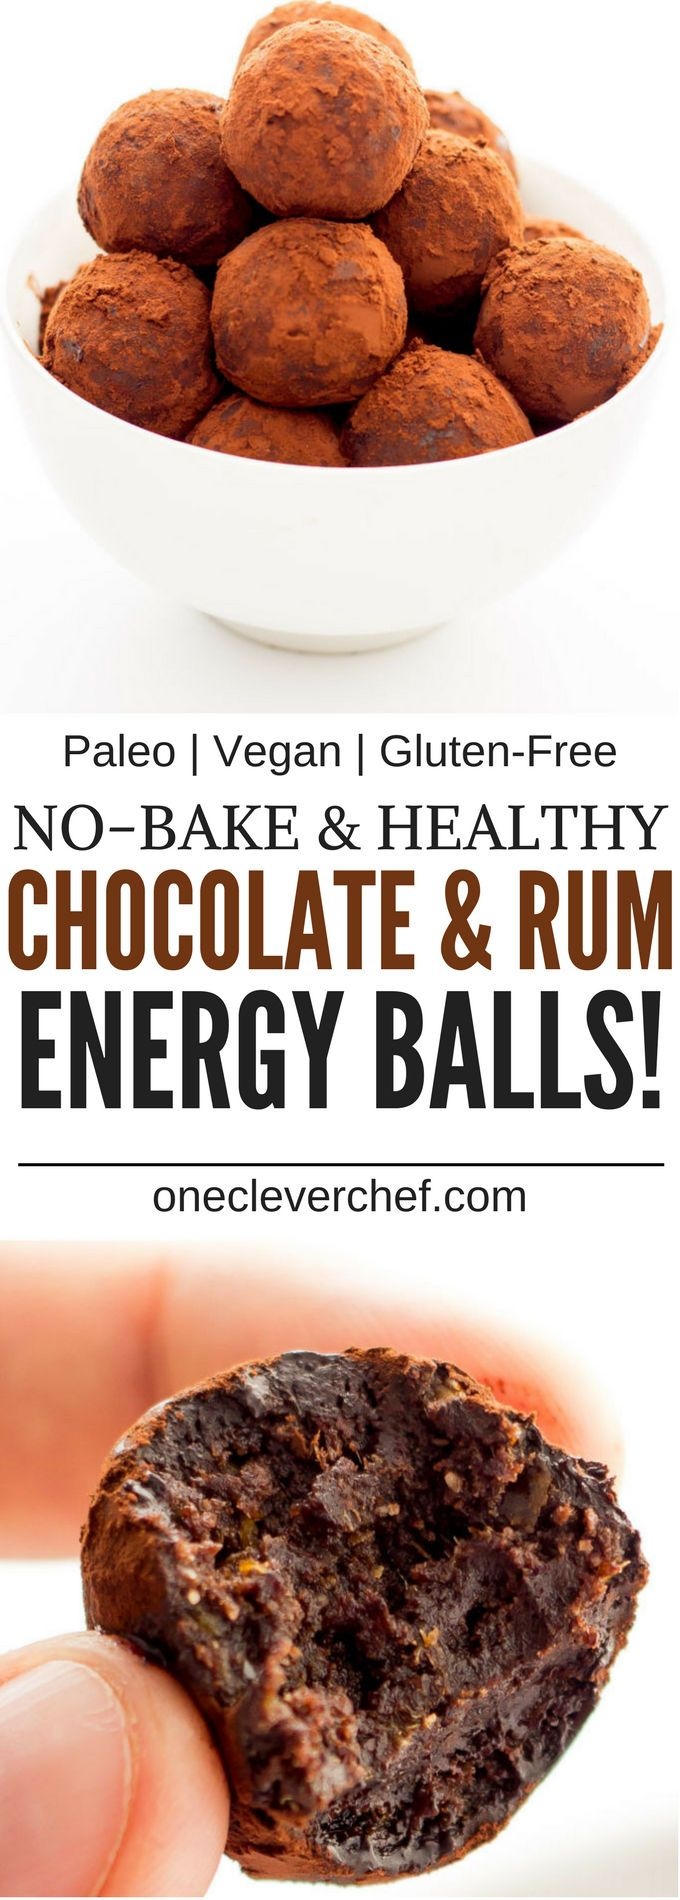 Try These Gluten-Free Chocolate Rum Balls That are Also Sugar-Free